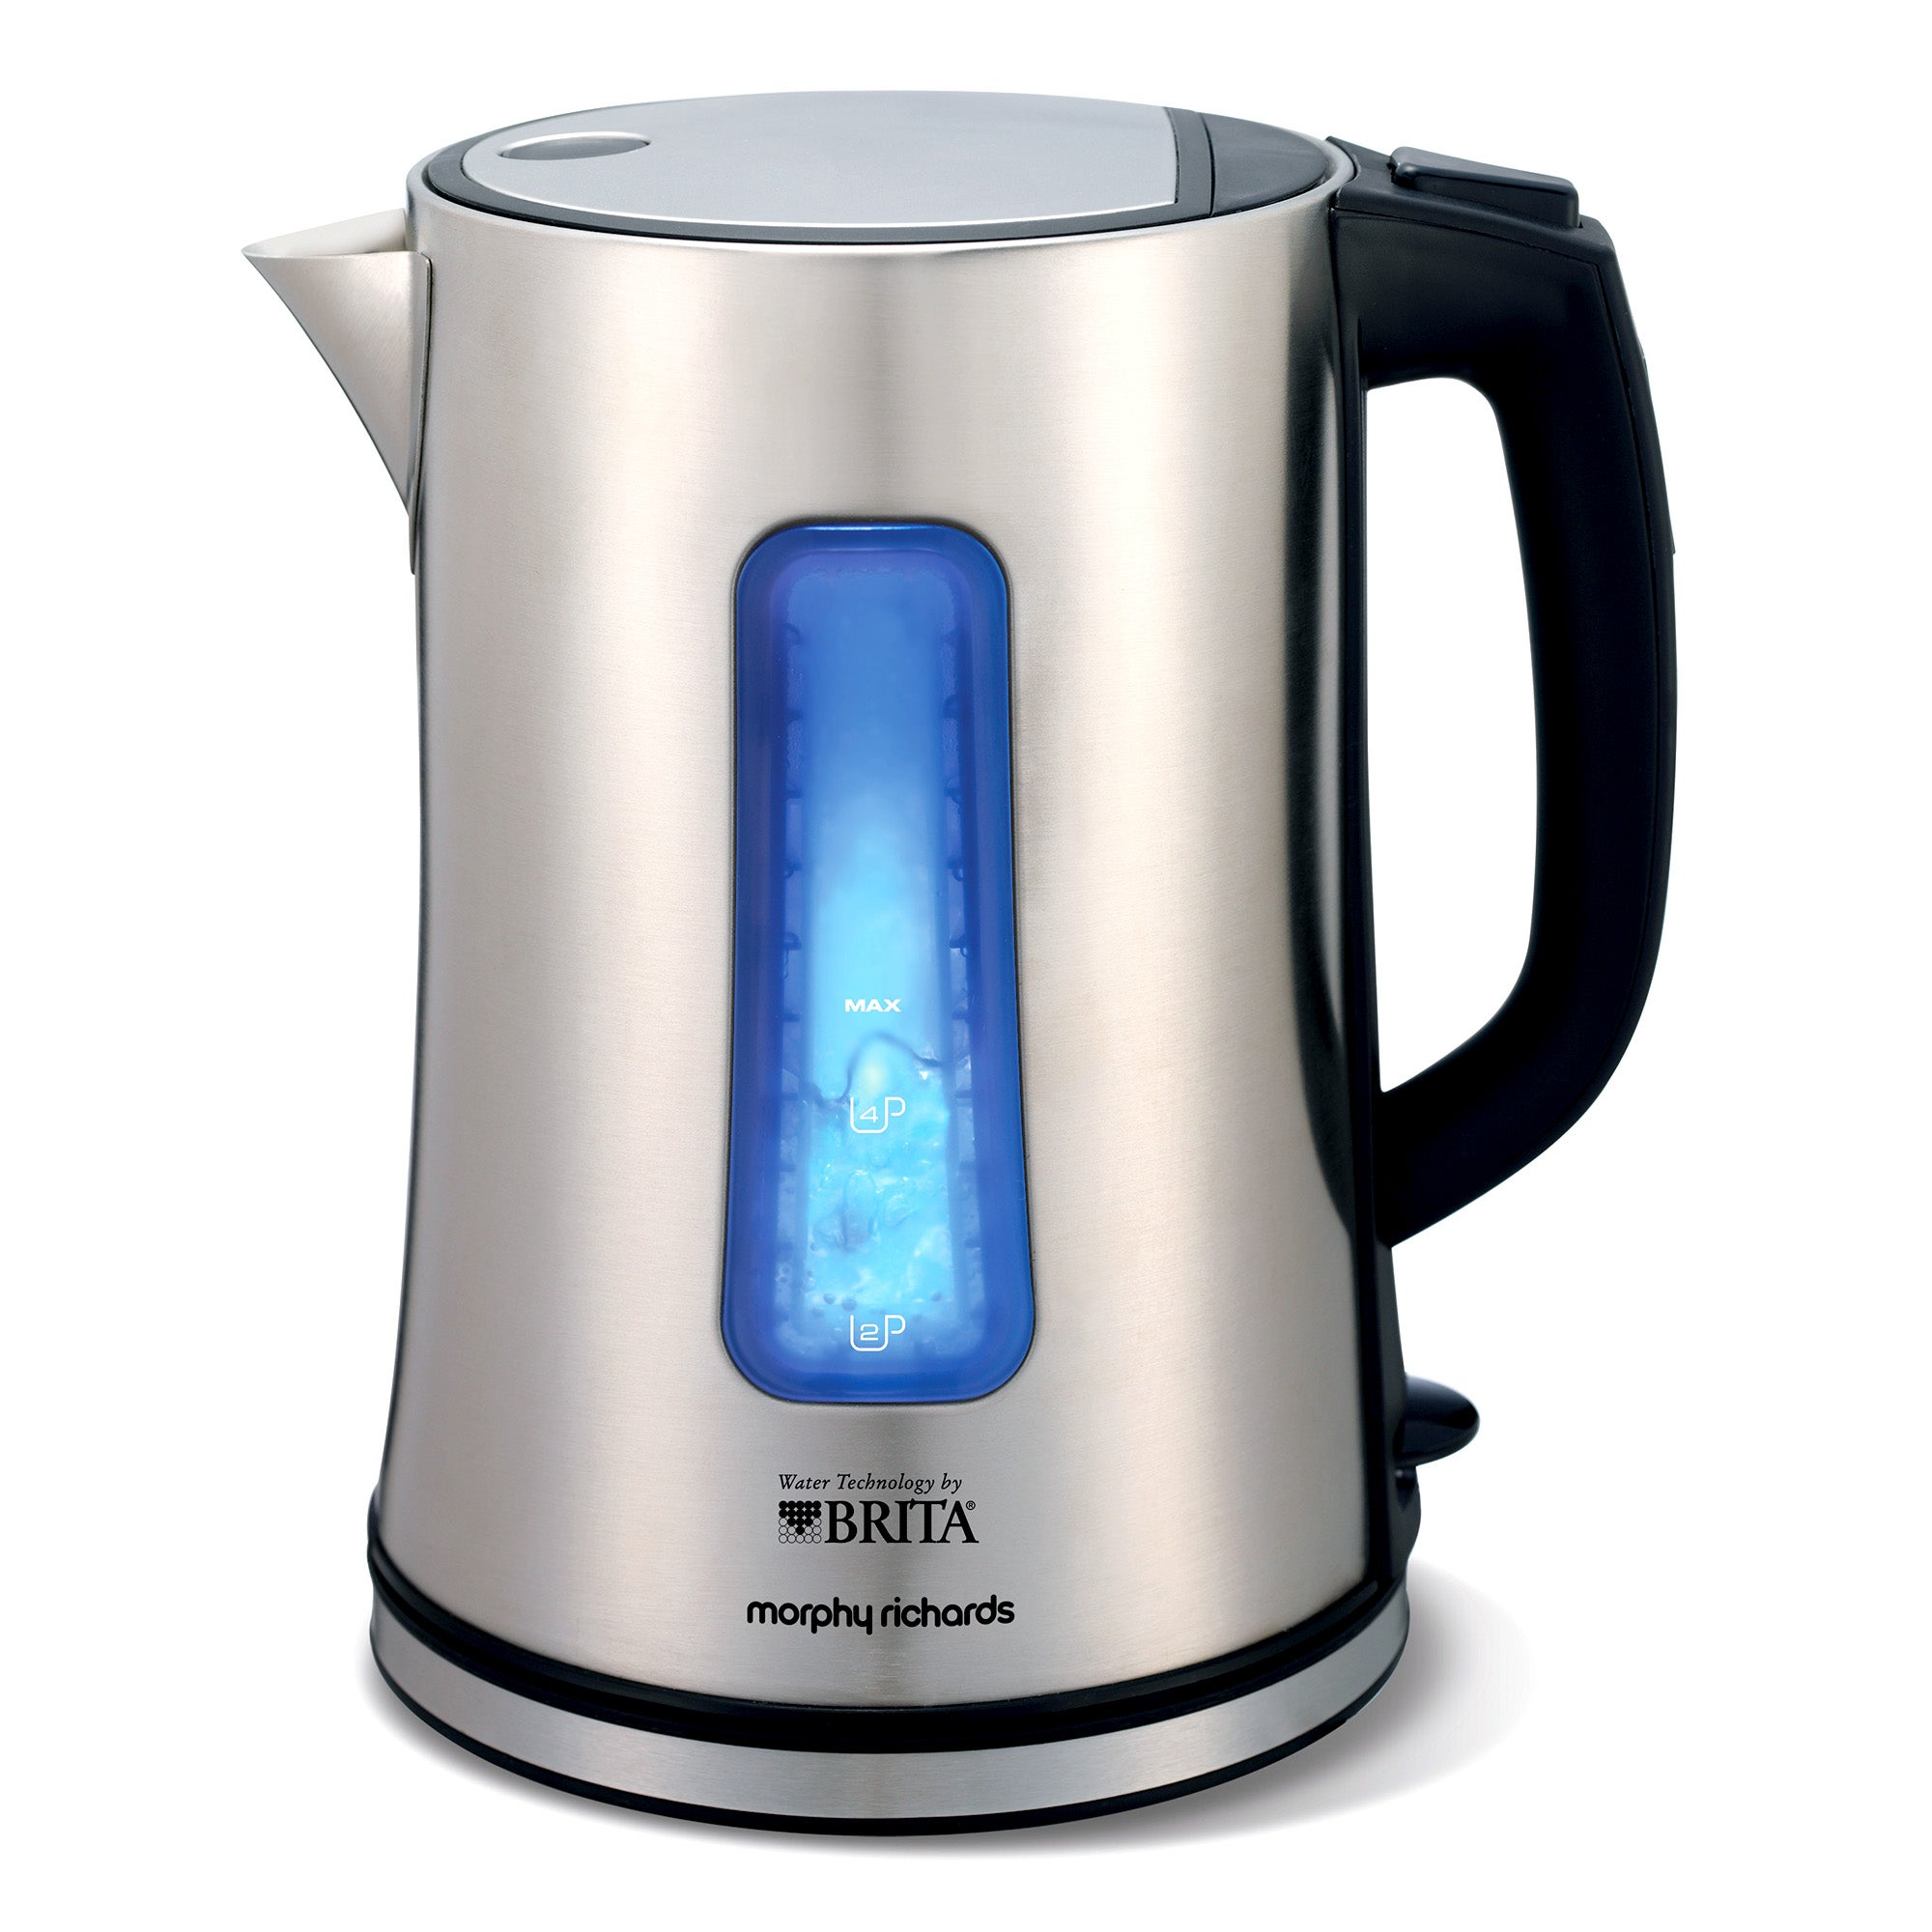 Morphy Richards Accents Brita Filter Stainless Steel Silver Jug Kettle